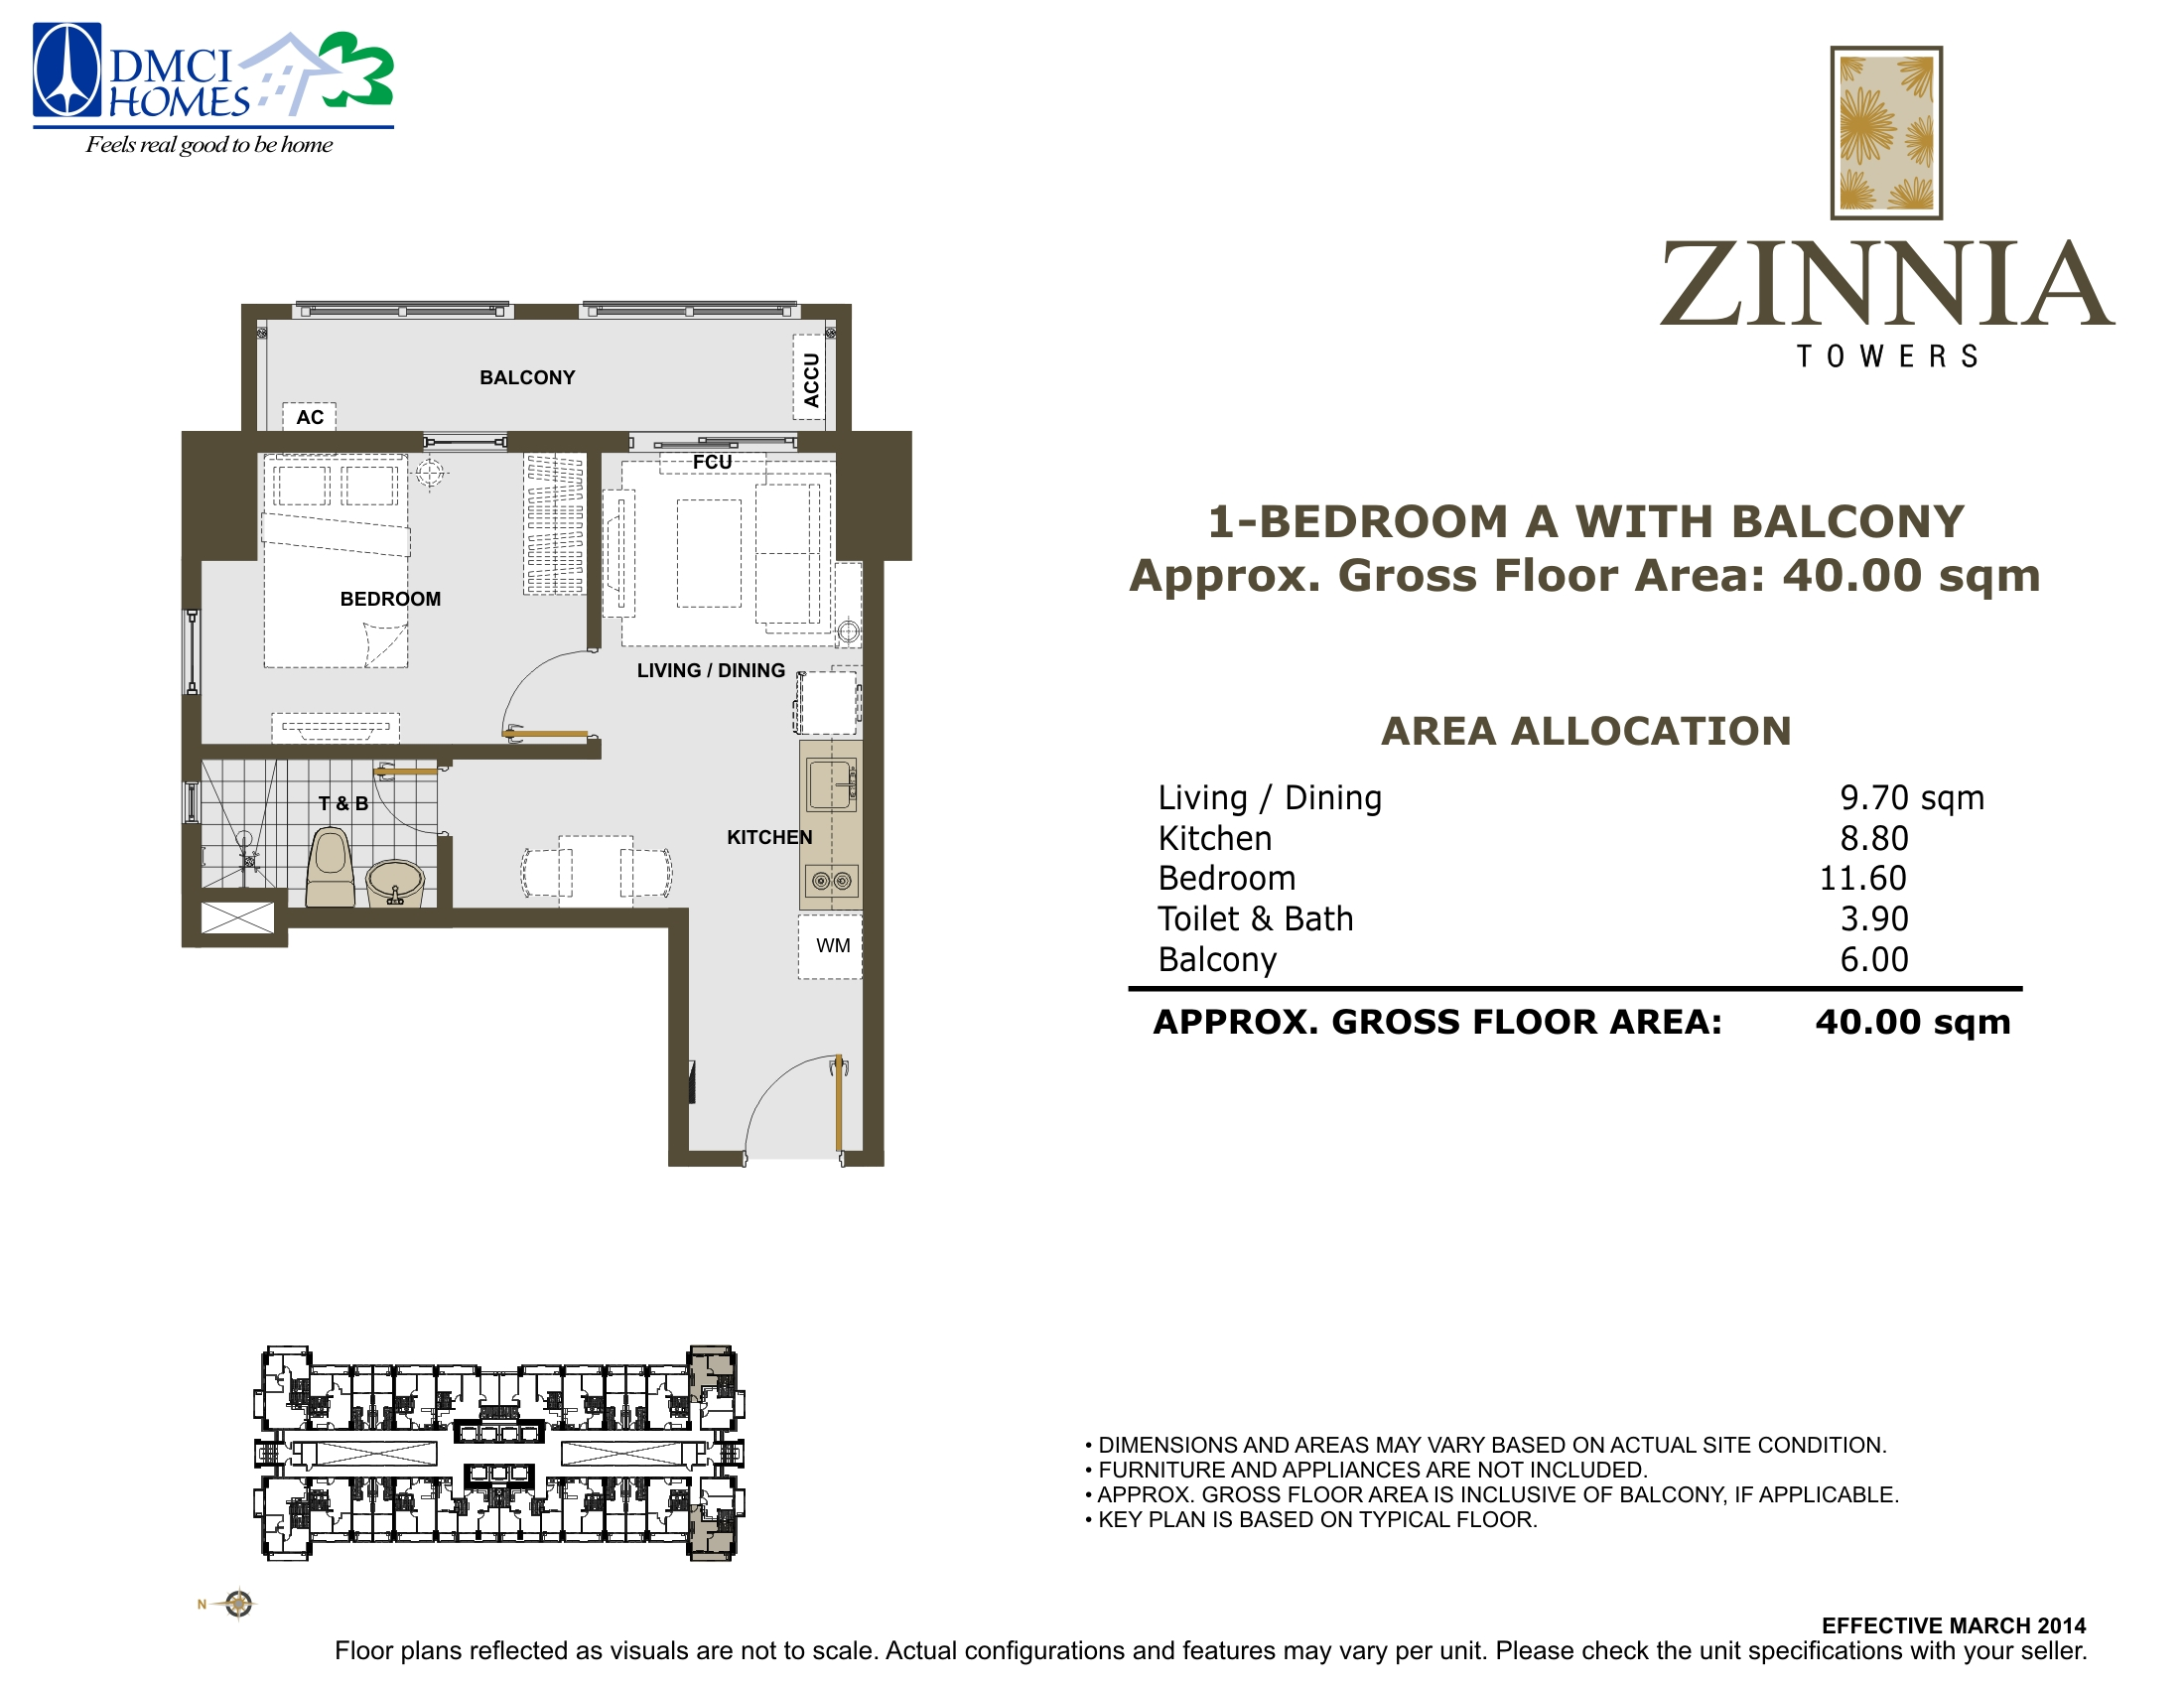 zinnia-towers-1bedroom-a-with-balcony